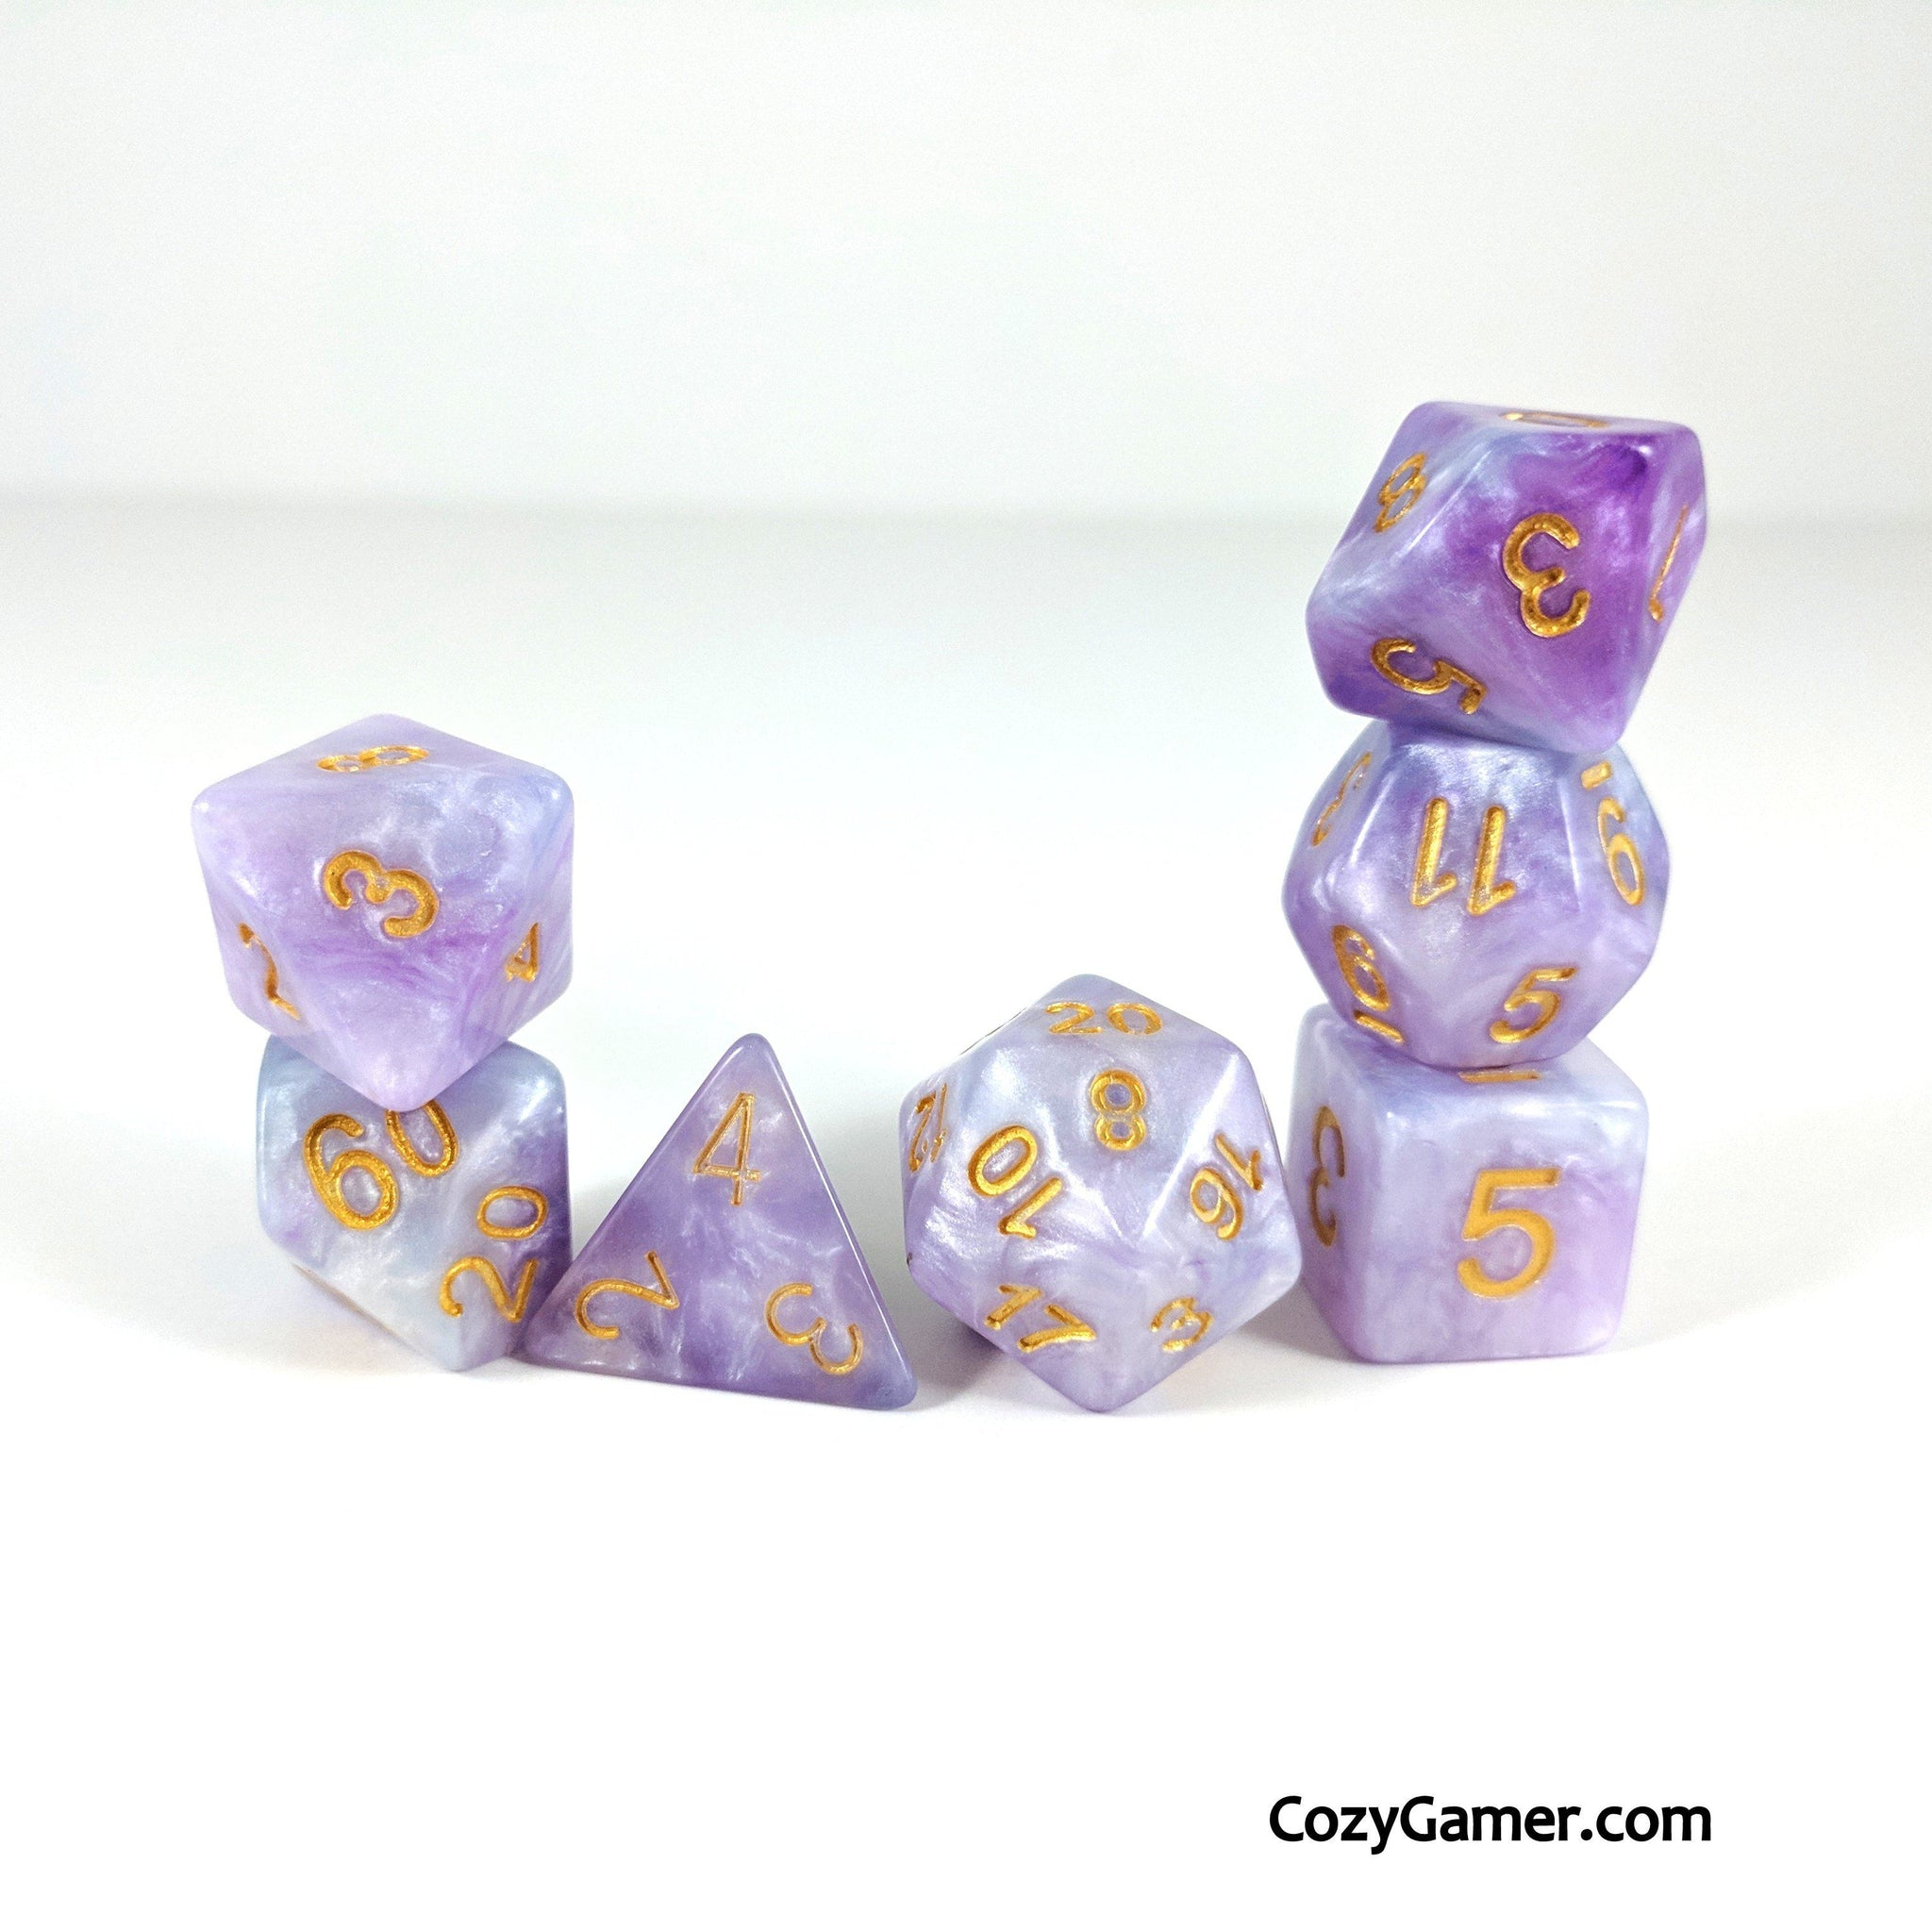 Periwinkle Dream DnD Dice Set, Blue and Purple Pearl Shimmer Dice